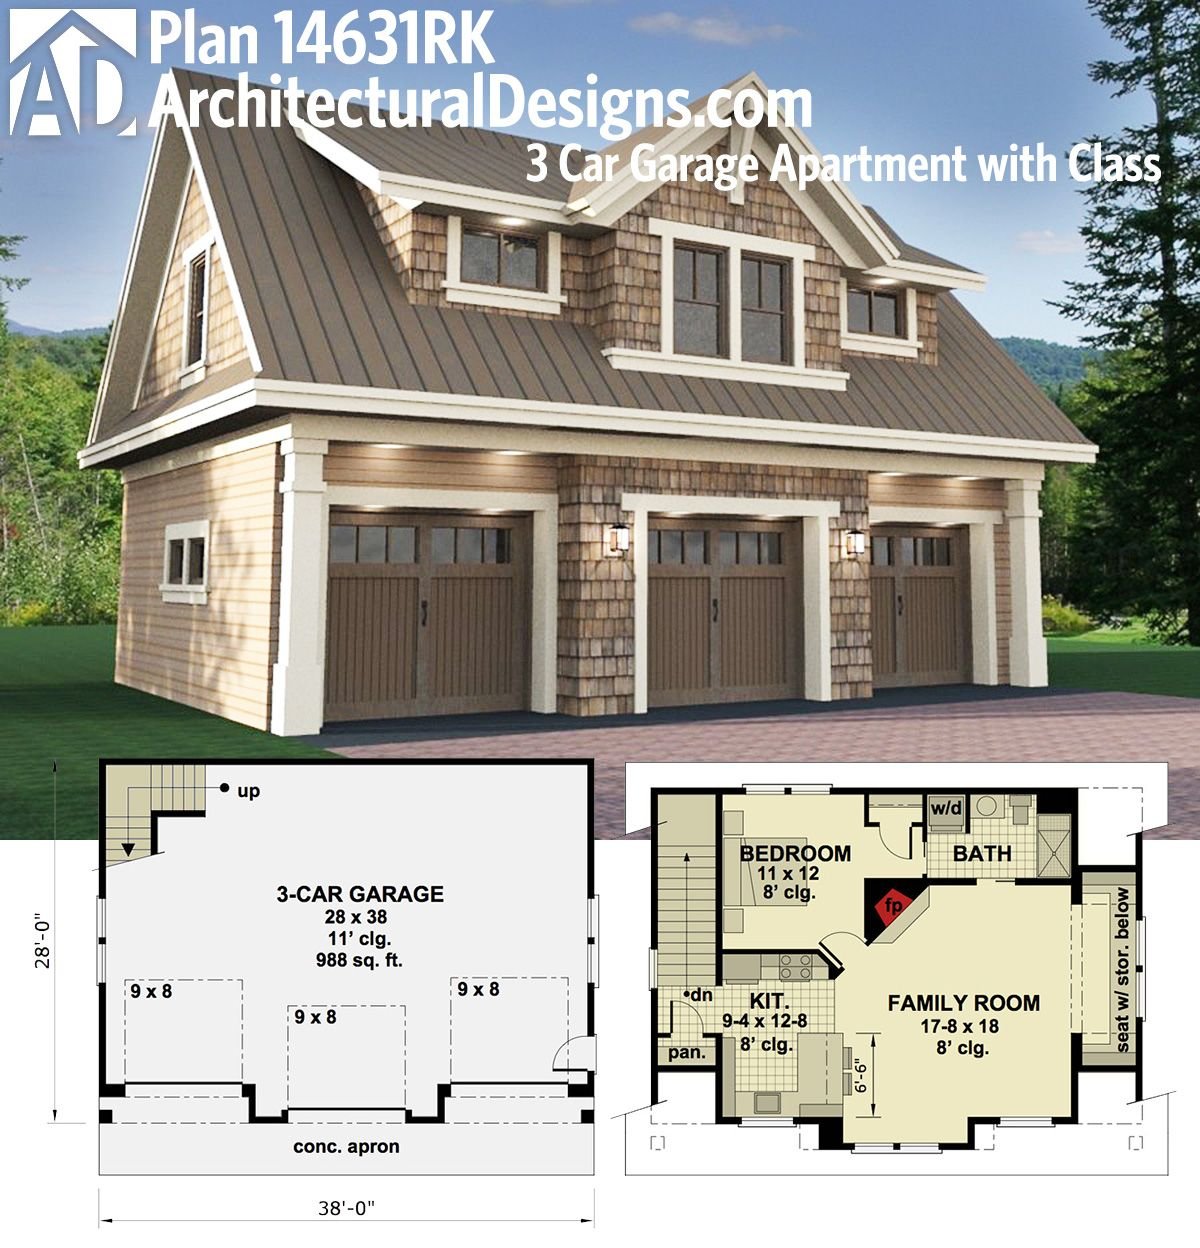 Plan 14631rk 3 car garage apartment with class carriage for Single car garage with apartment above plans